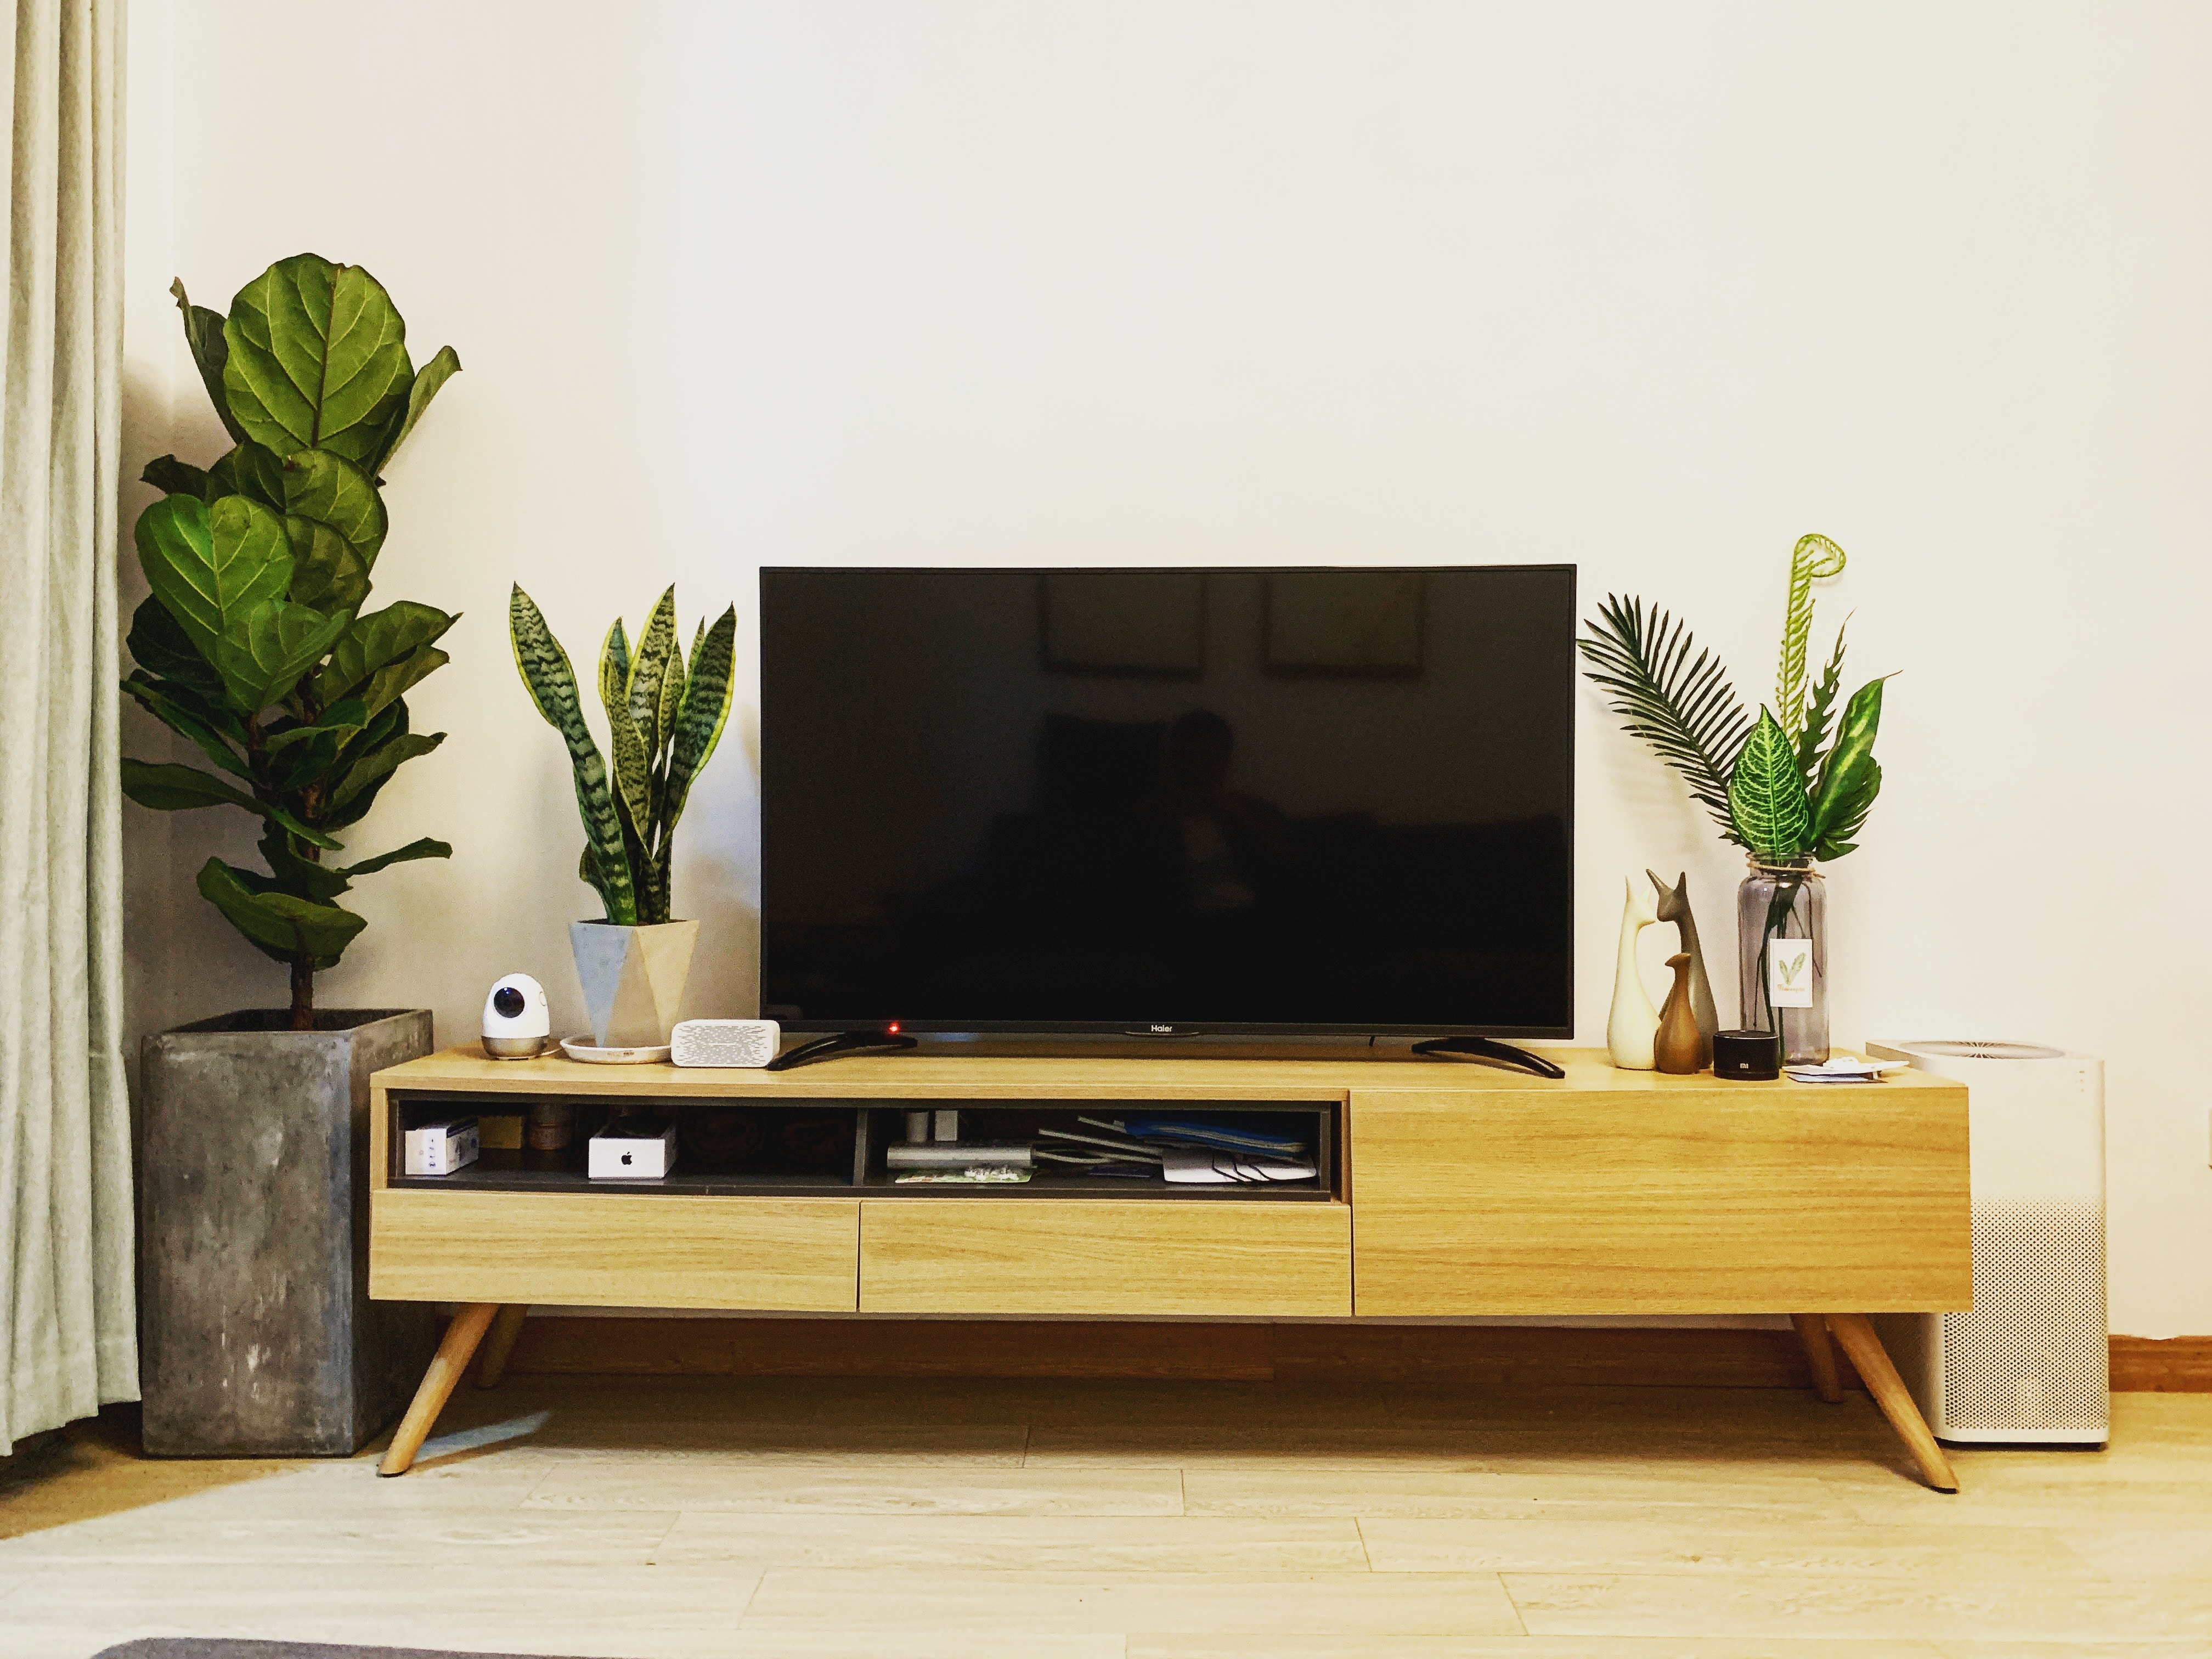 TV on stand with plants around